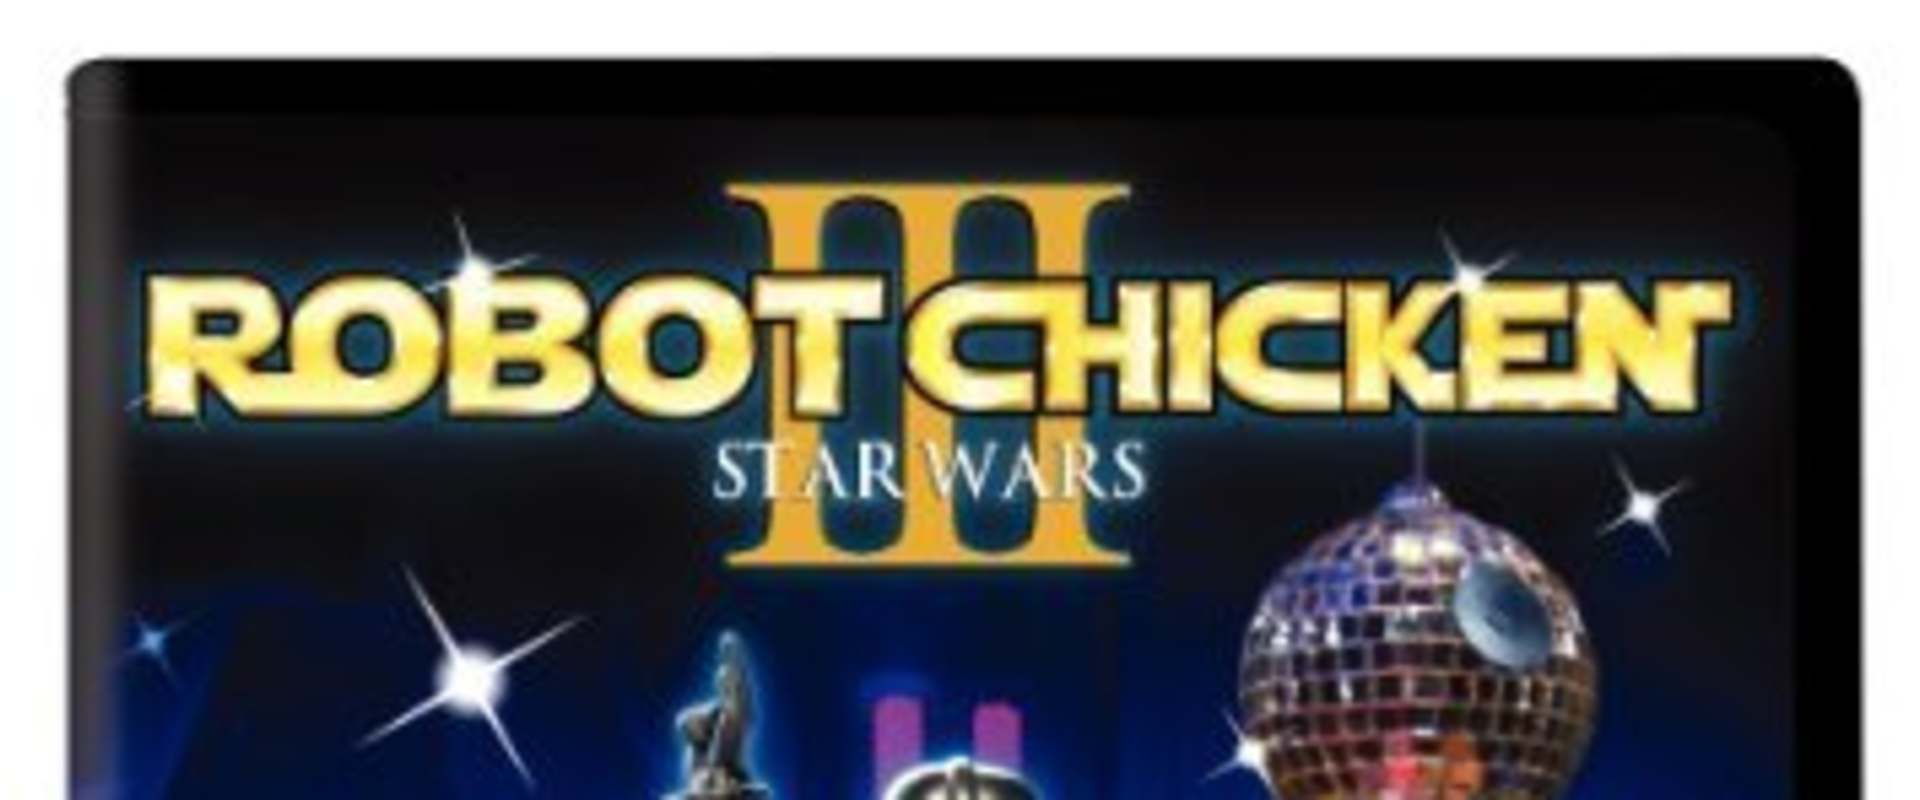 Robot Chicken: Star Wars Episode III background 2